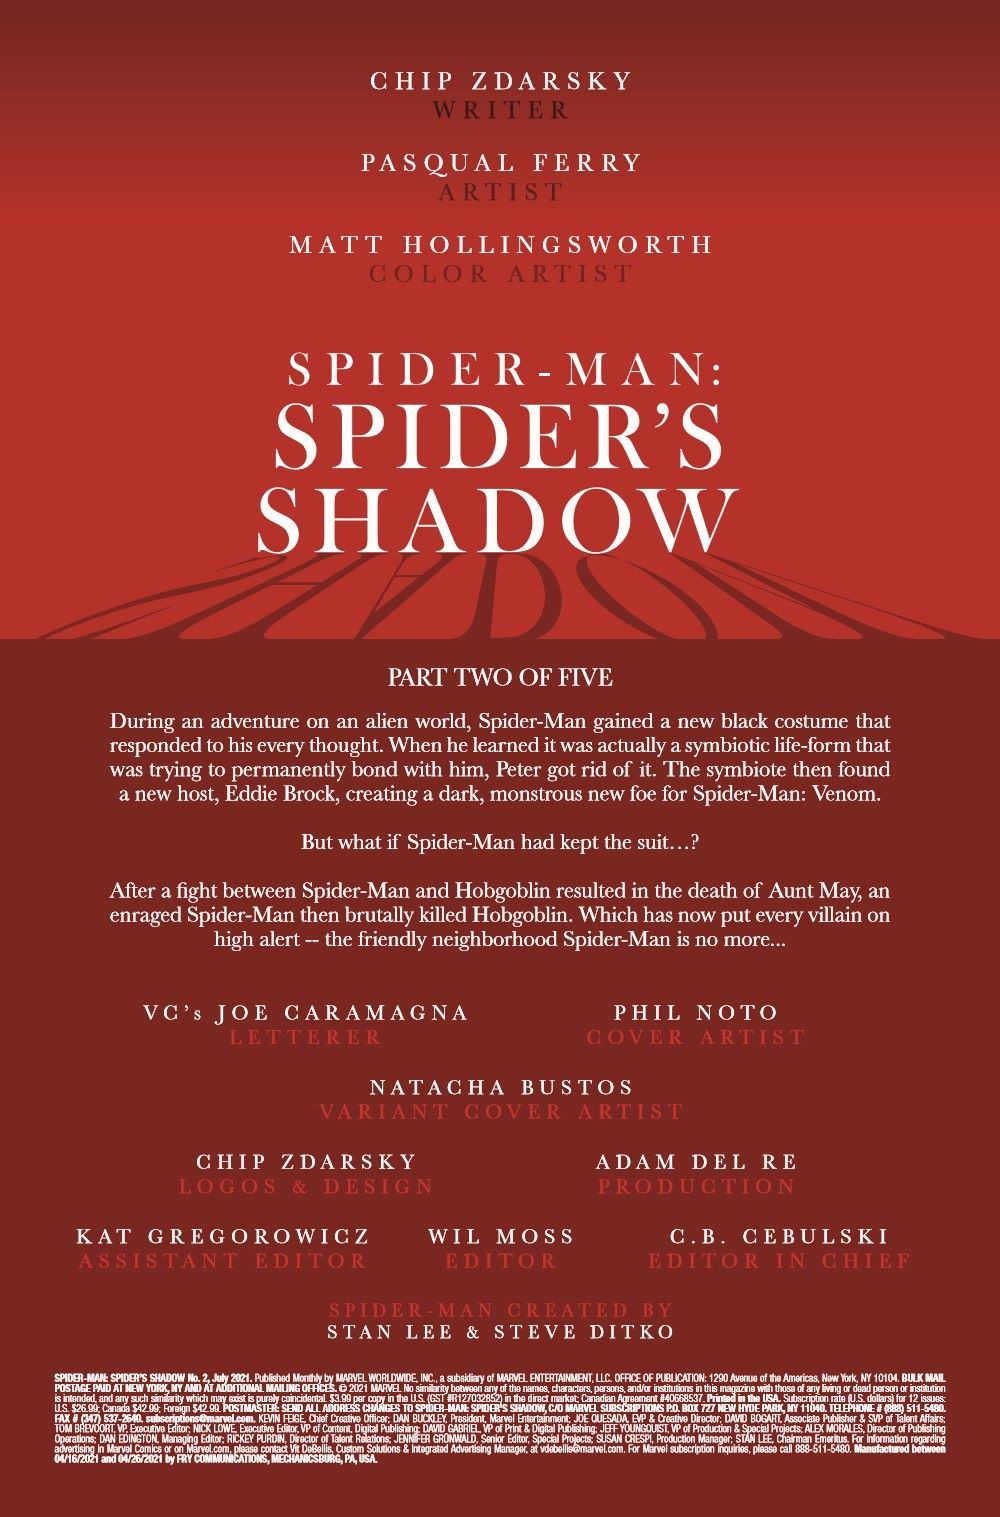 SMSPIDERSHADOW2021002_Preview-2 ComicList Previews: SPIDER-MAN SPIDER'S SHADOW #2 (OF 4)